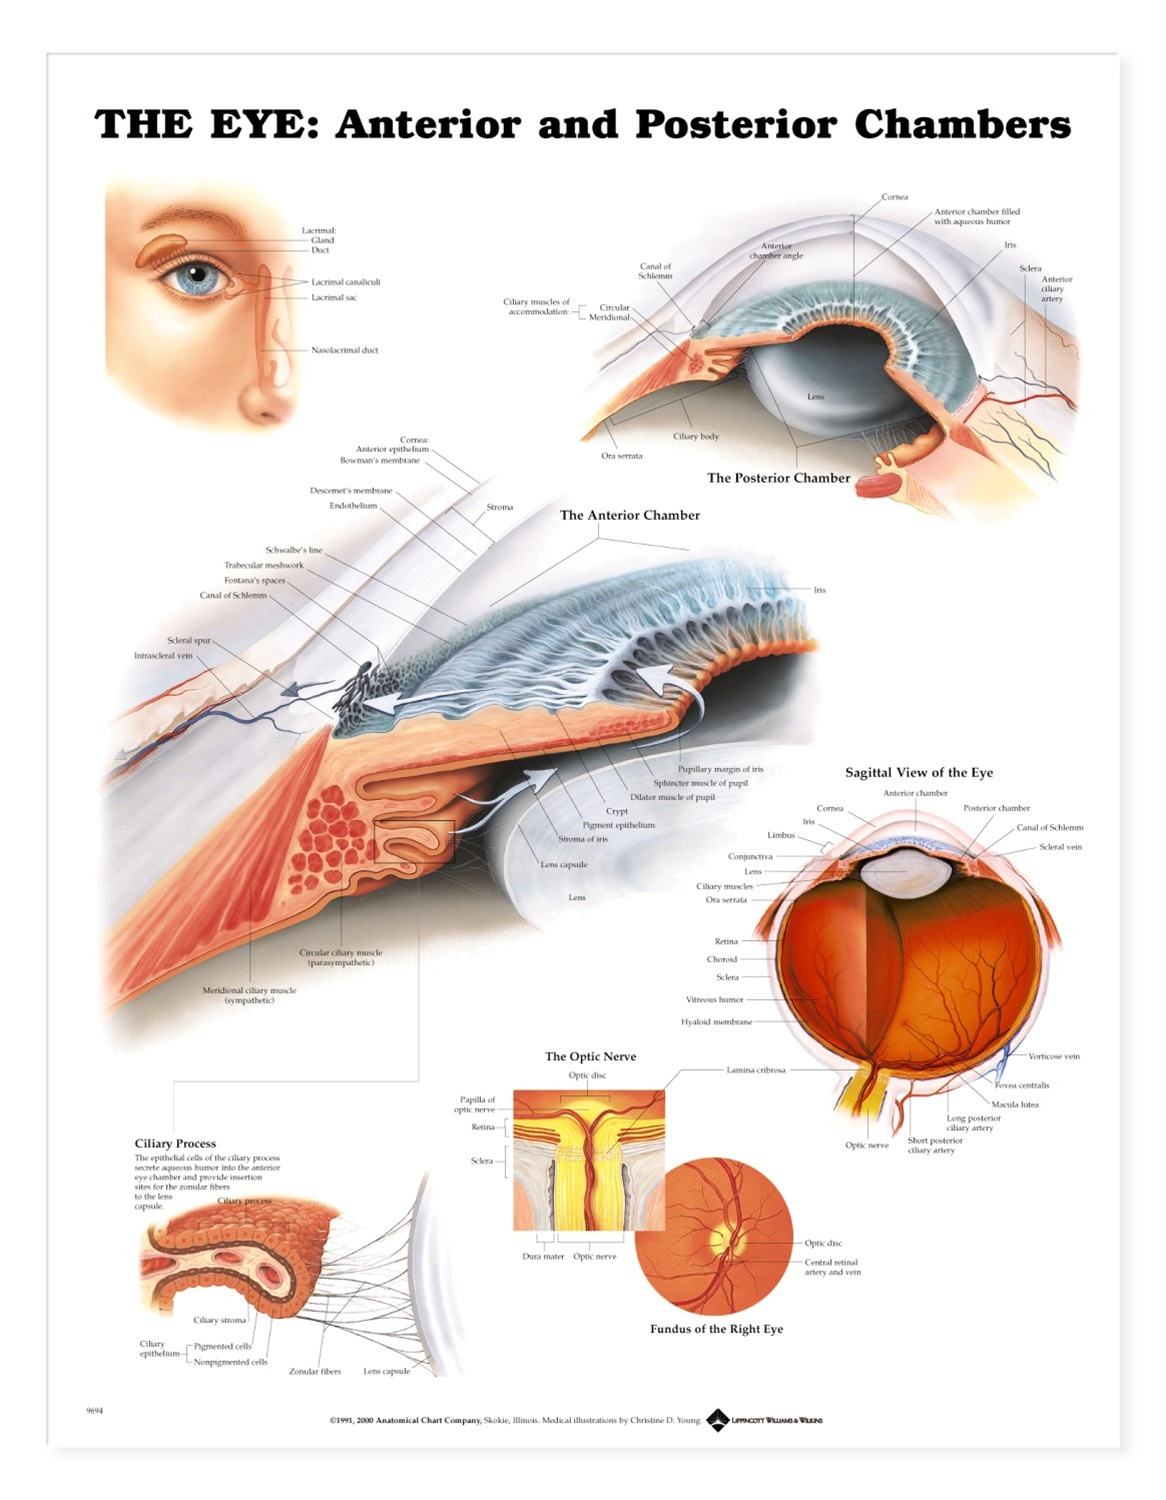 Archive File Anatomy Of The Eye Jpg Manual Guide